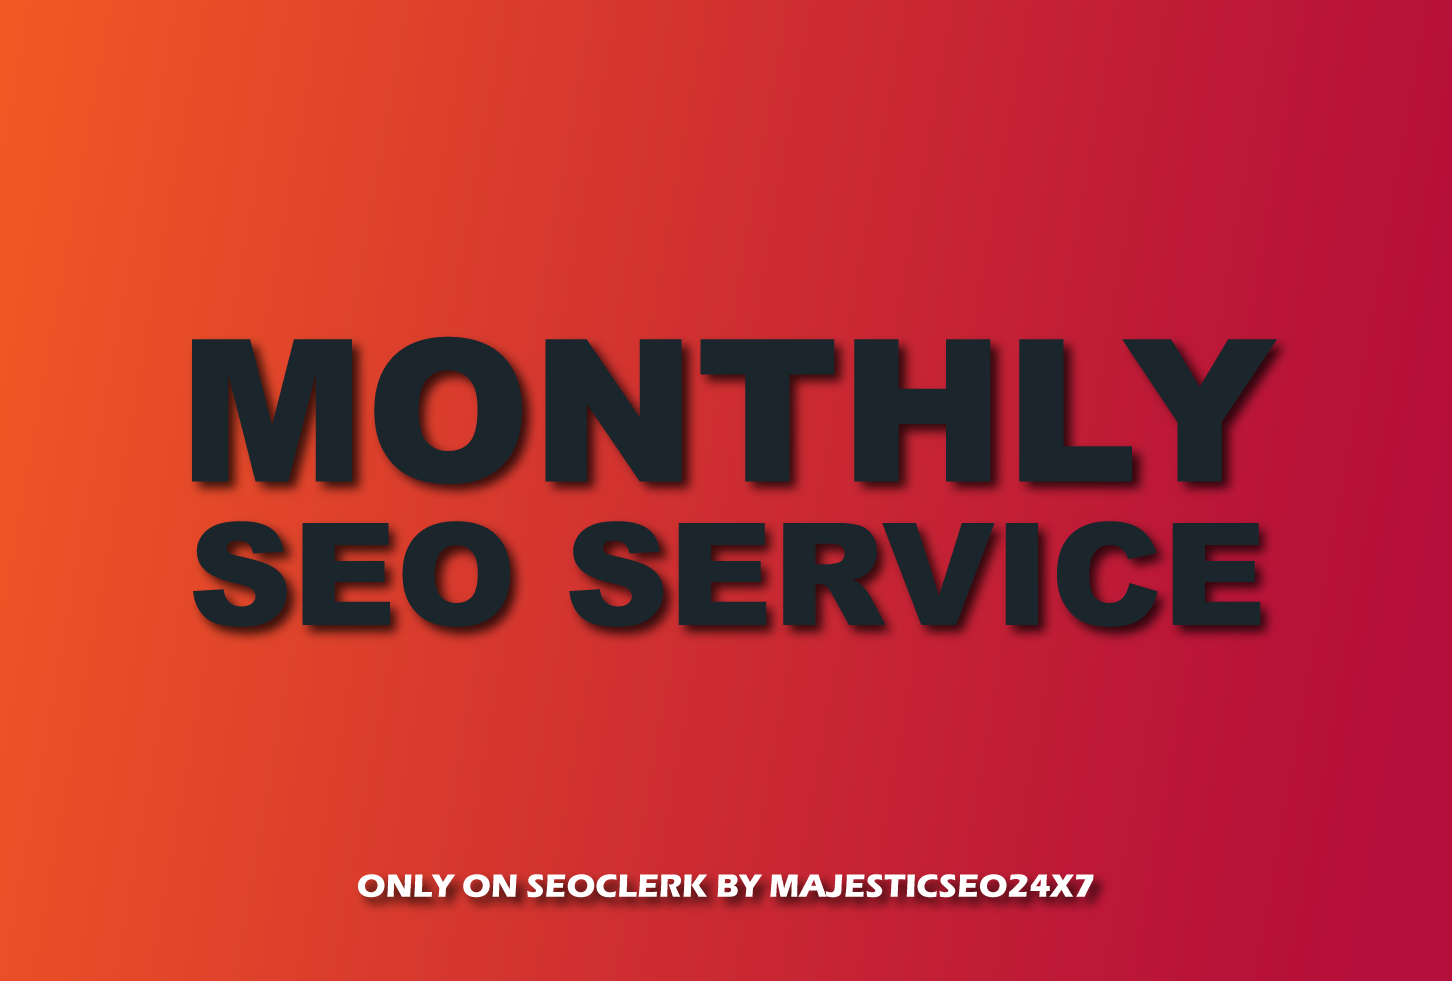 Monthly SEO Service - Whitehat High Authority Backlinks To Improve Your Ranking Toward Page 1